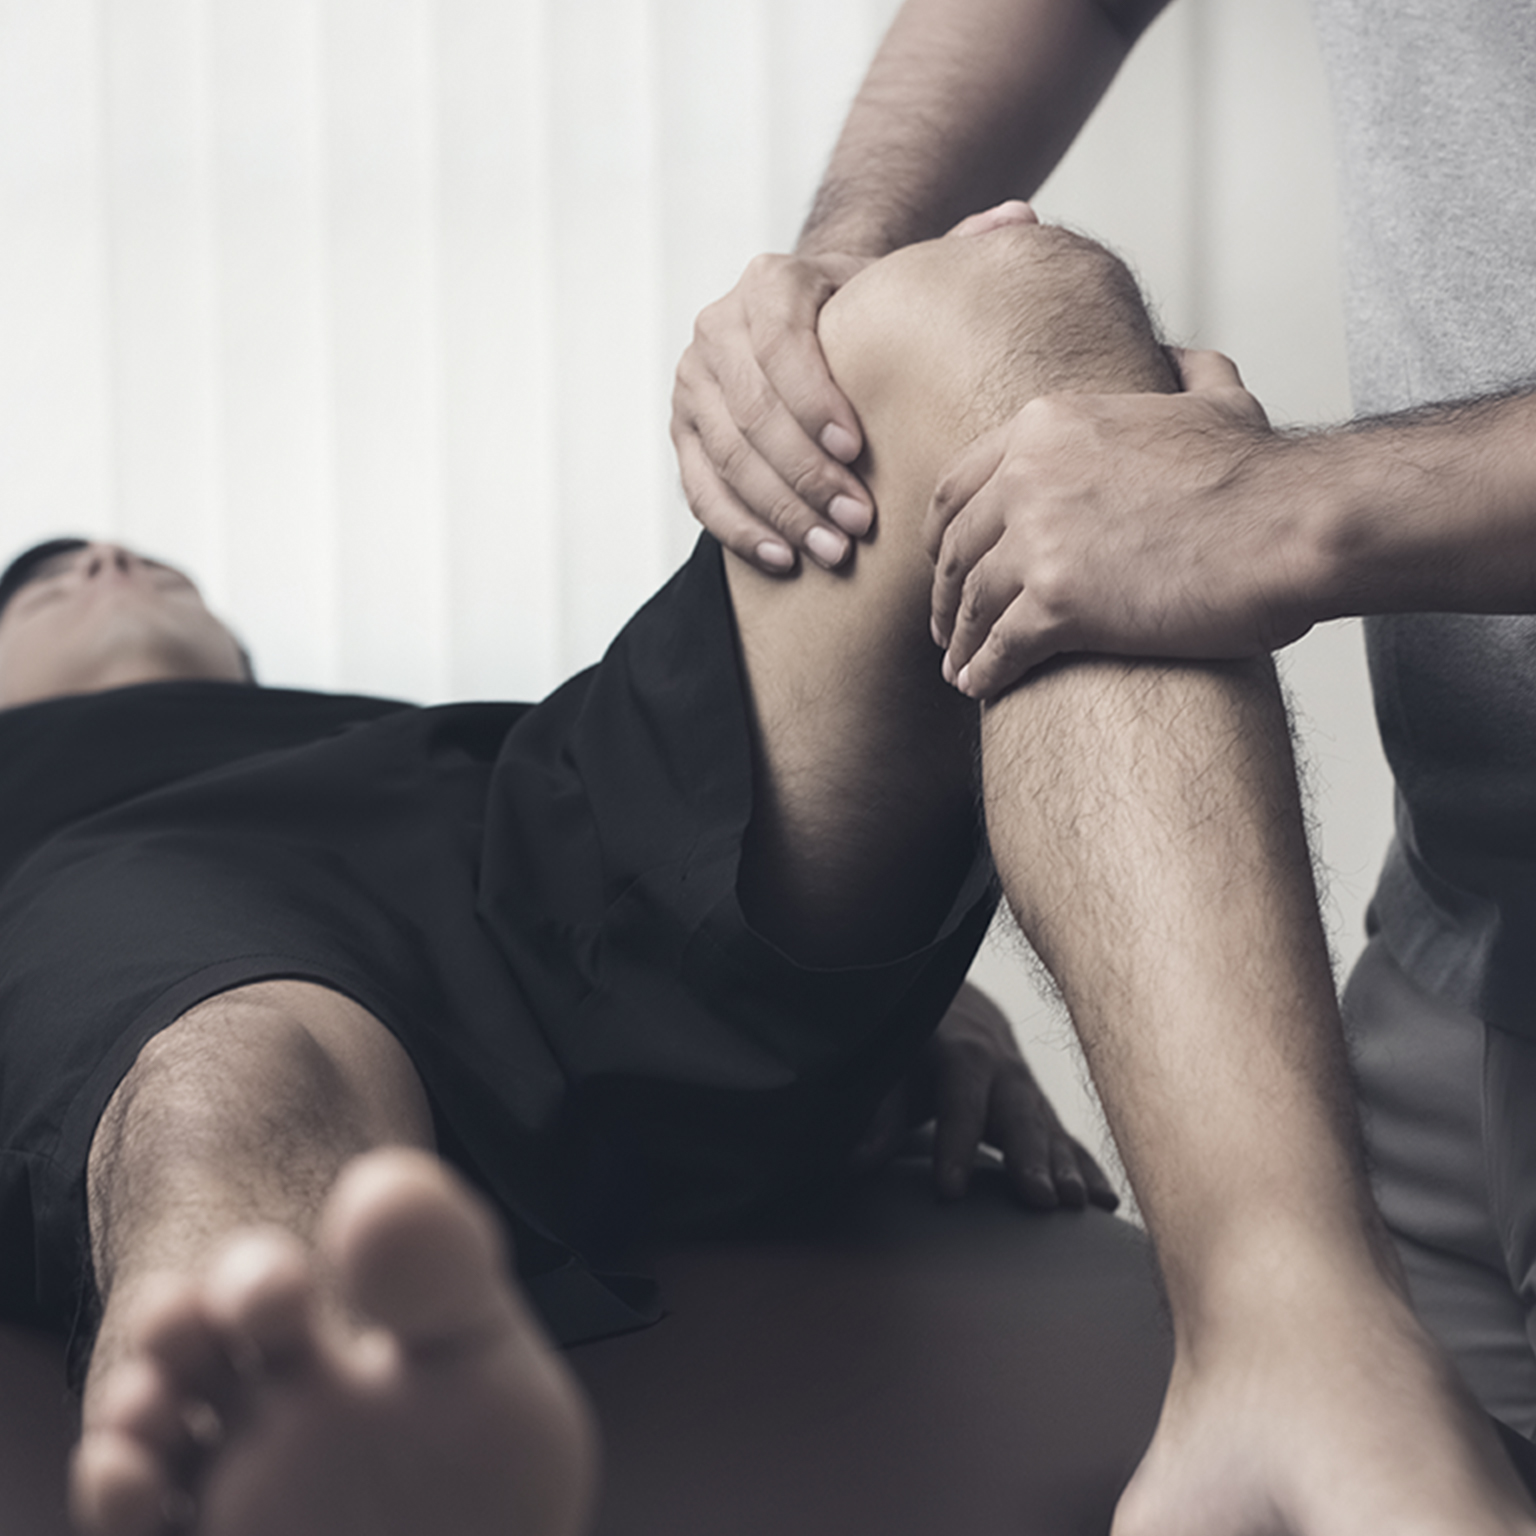 Physical Therapy treatment at Ashton Rehabilitation Clinic, Silver Spring, MD.